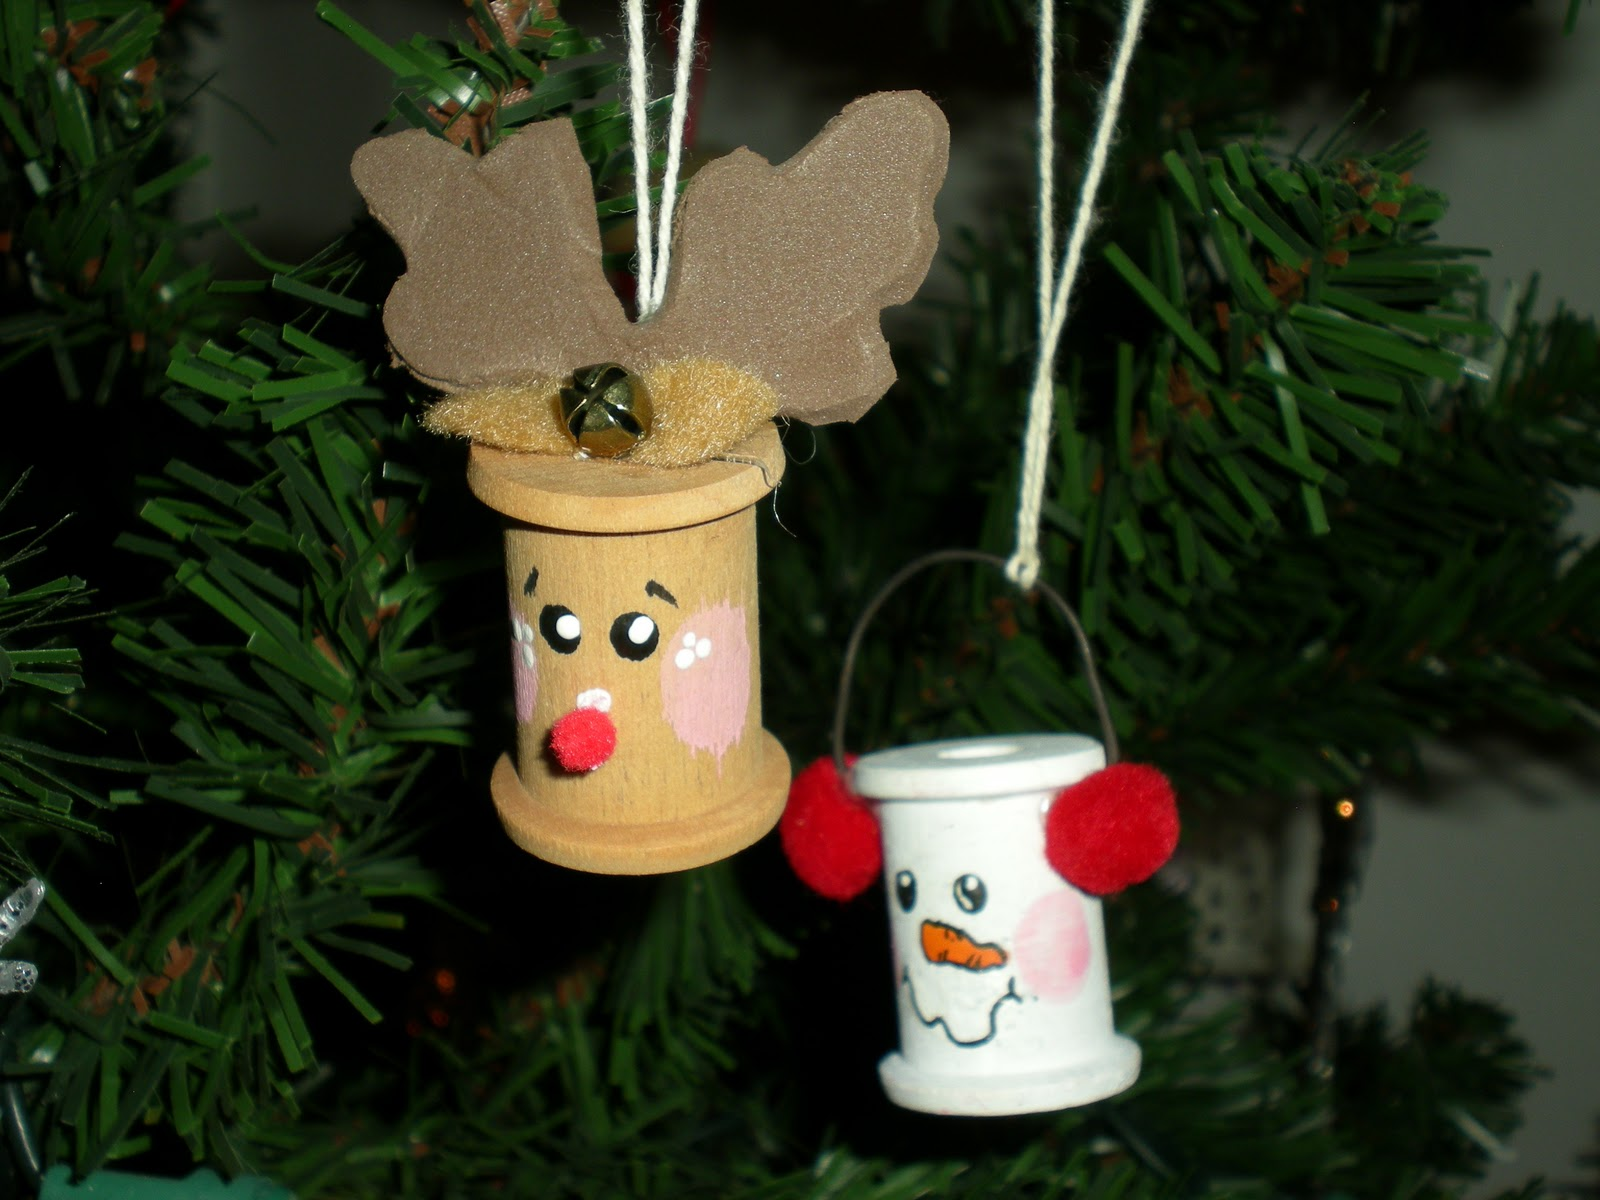 25 Days Of Christmas Crafts DAY 5 Homemade Ornaments